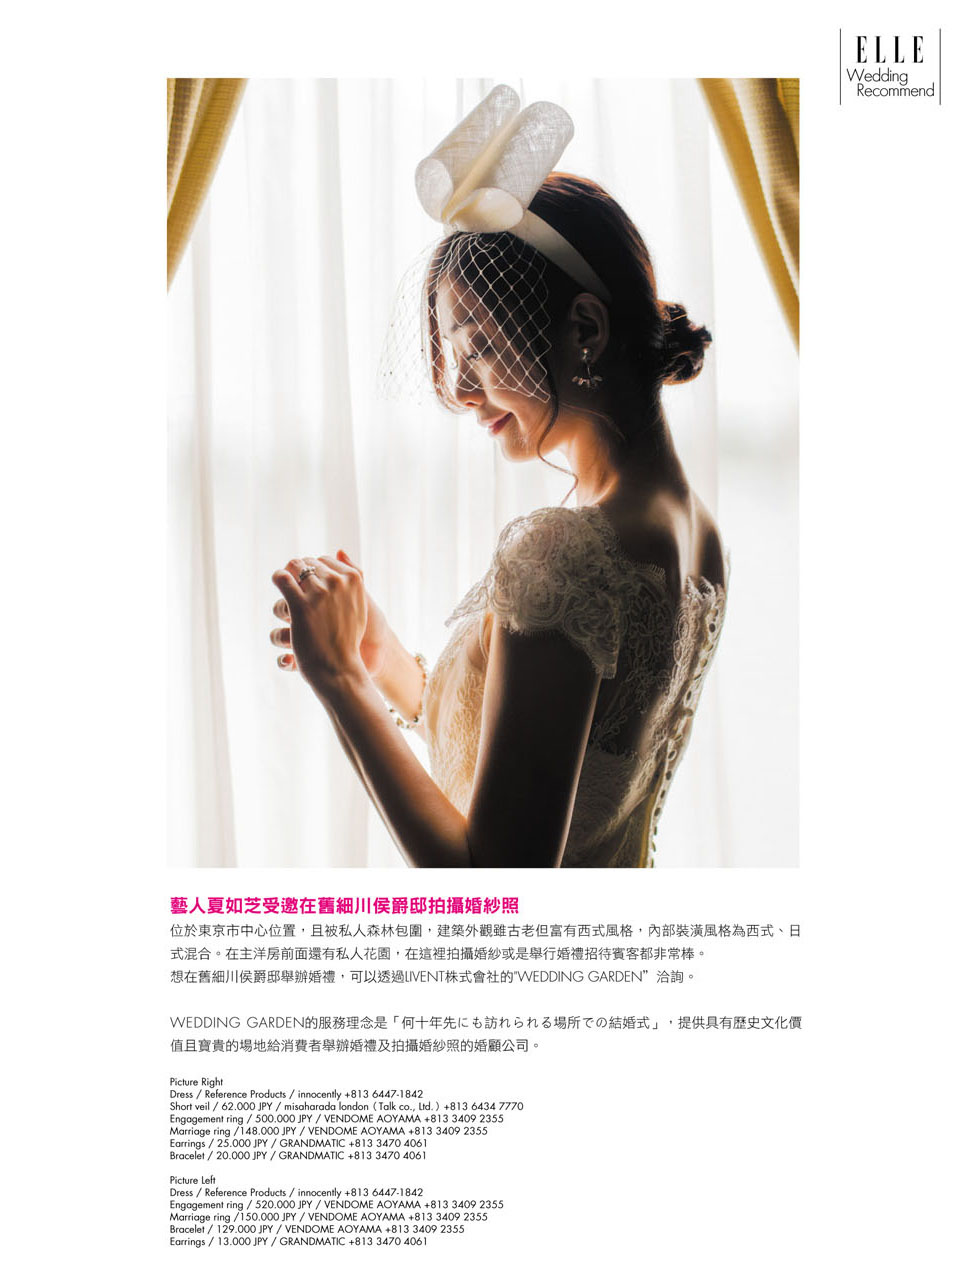 elle-wedding-taiwan-1